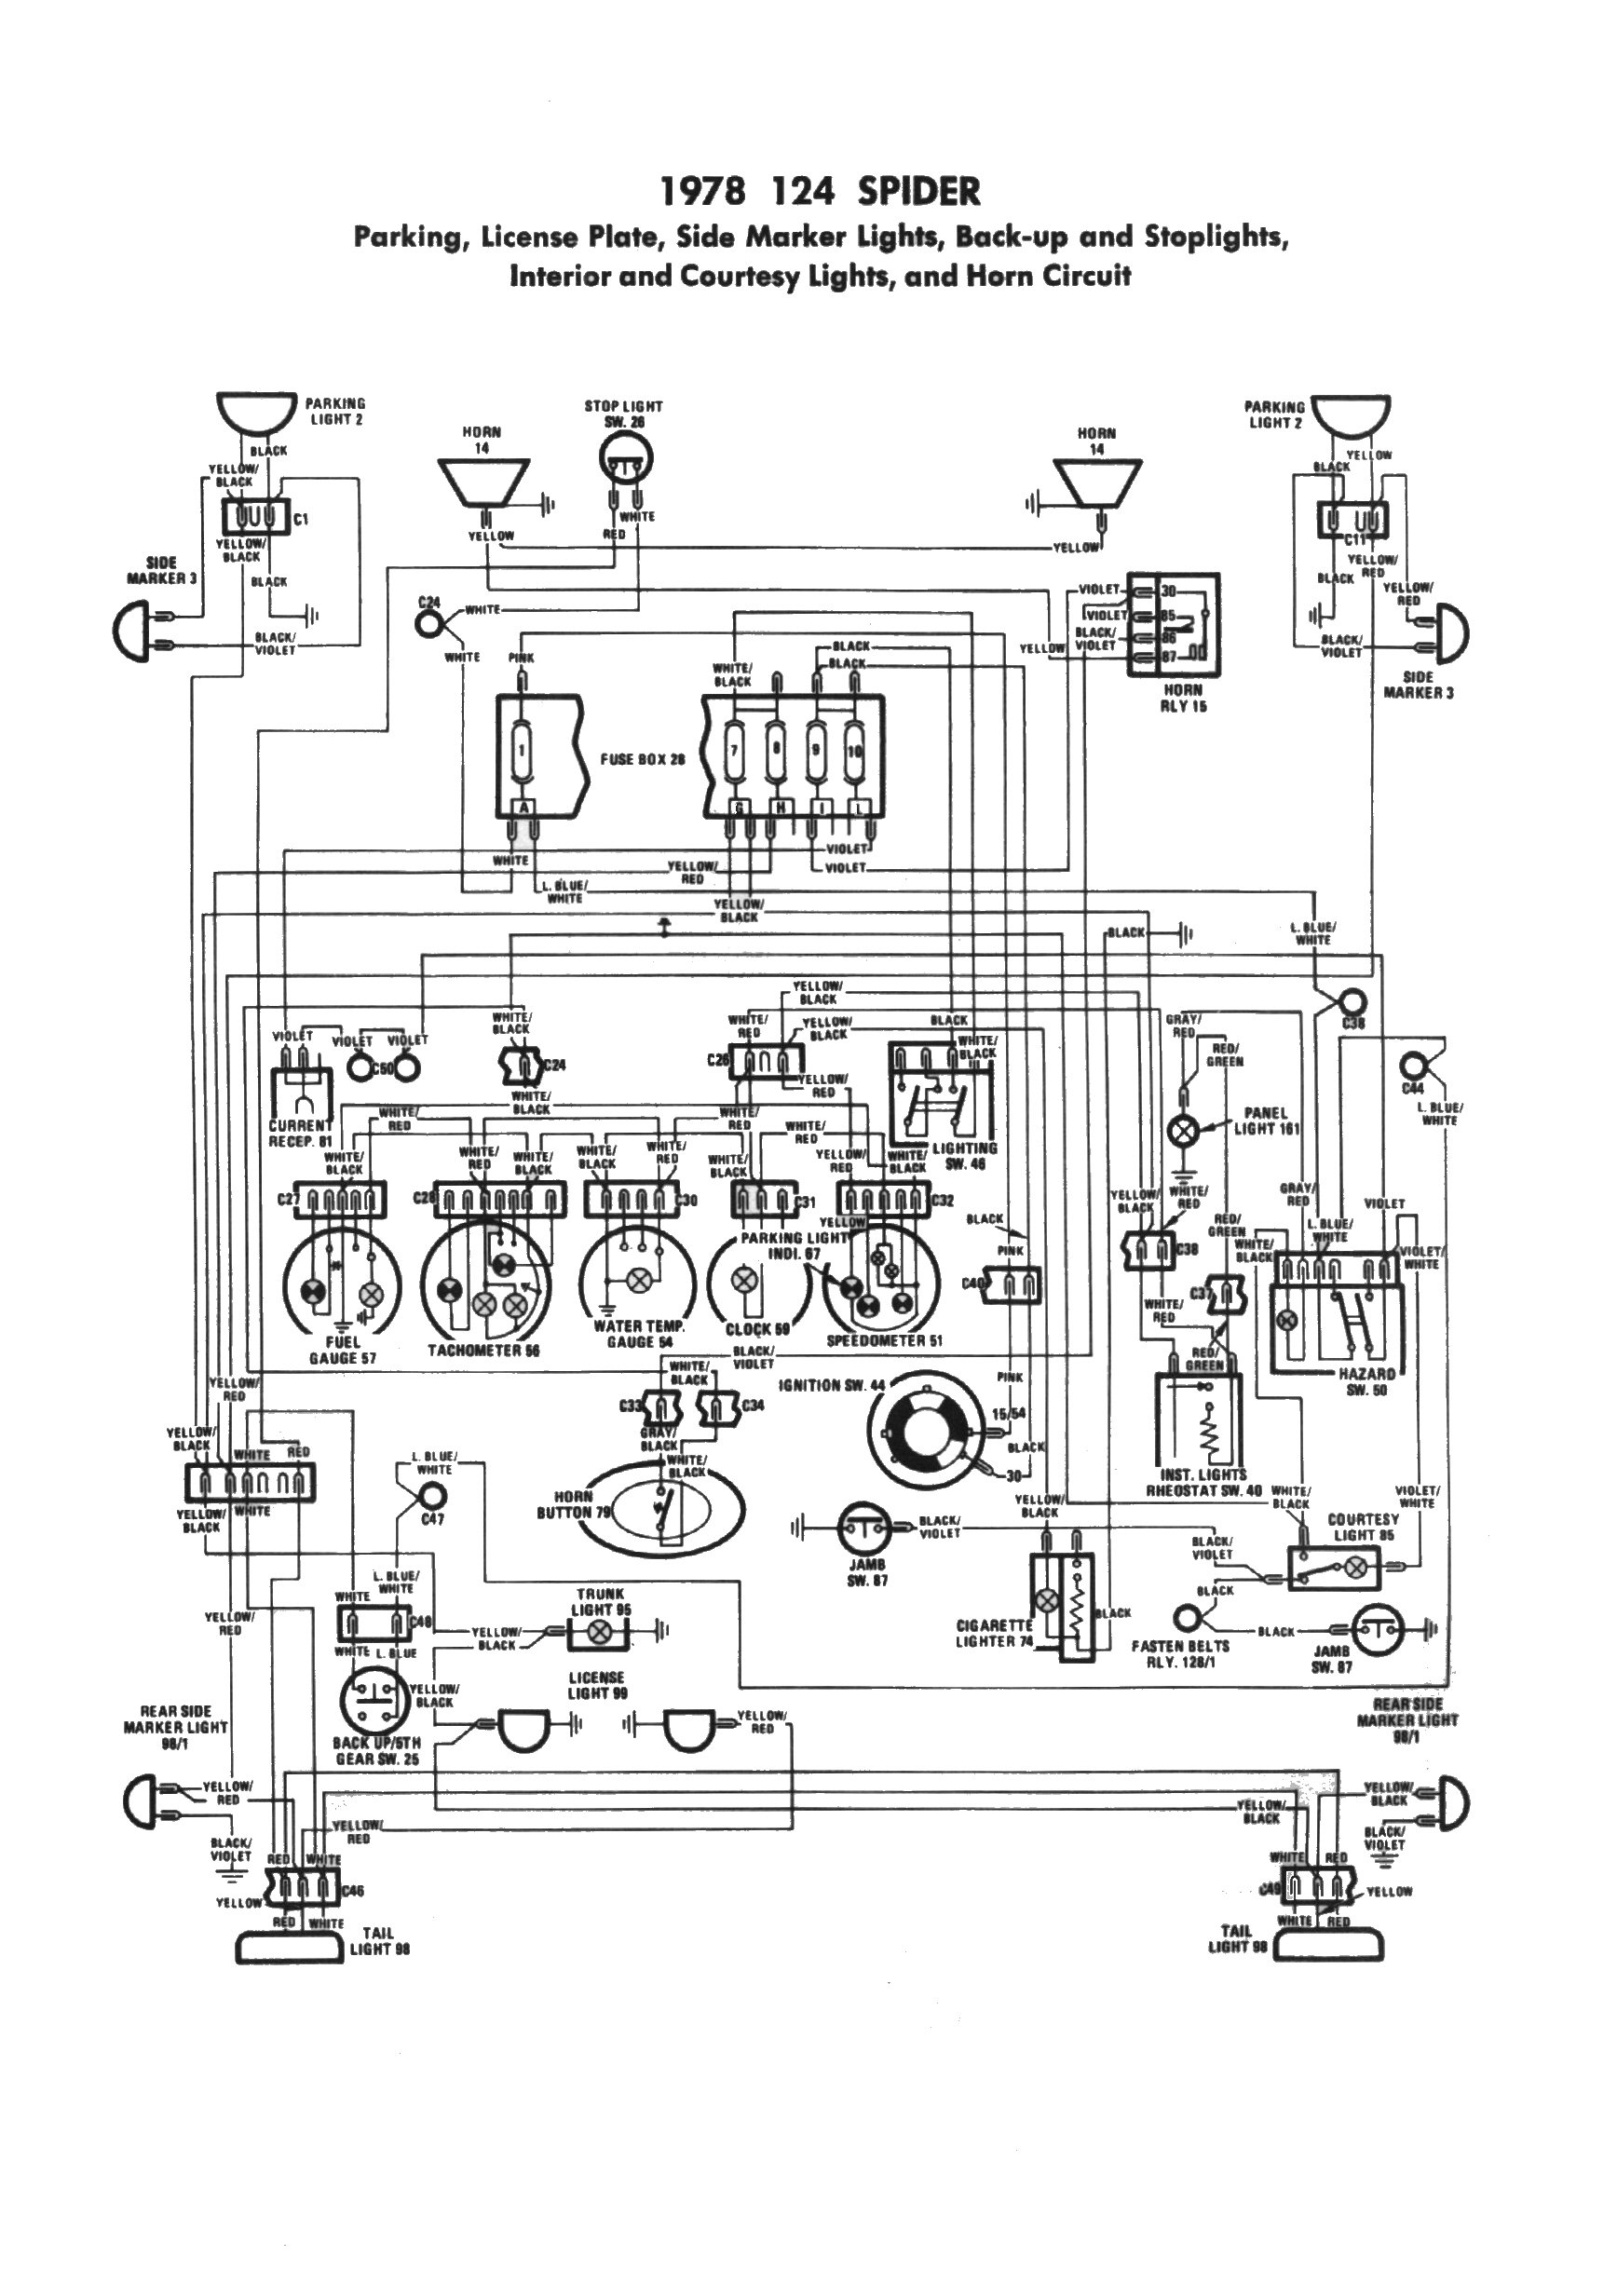 Iveco Daily Wiring Diagram Free Download Diagrams And For Cat5 Network Cable Polesioco Pdf 38 Images Rh Highcare Asia Pontiac